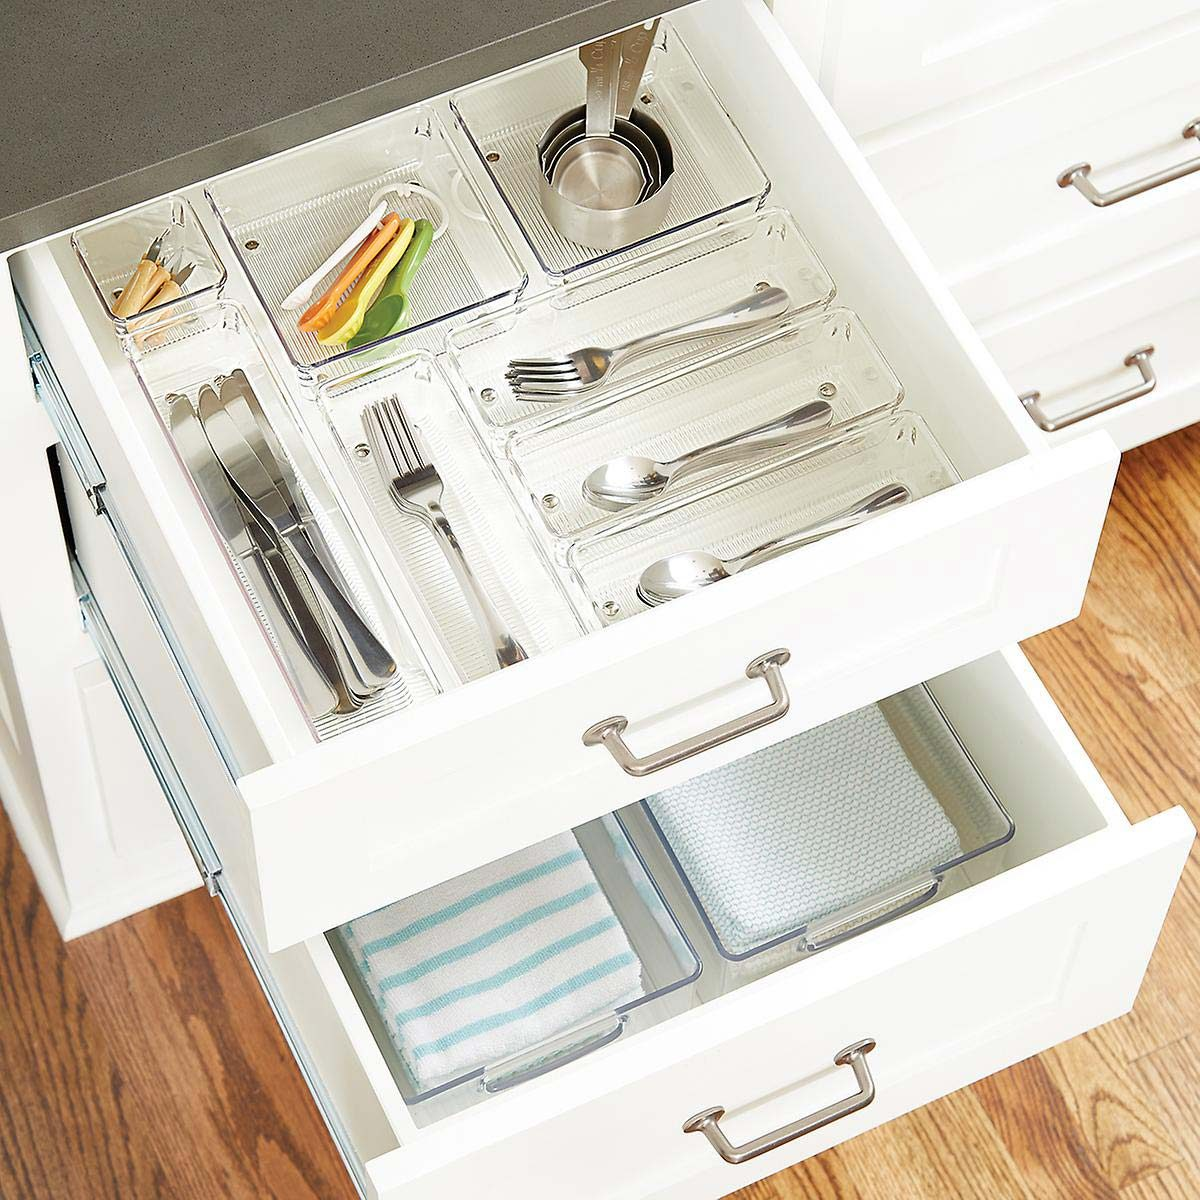 silverware organizer Cf 17 10036925 Linus Shallow Drawer